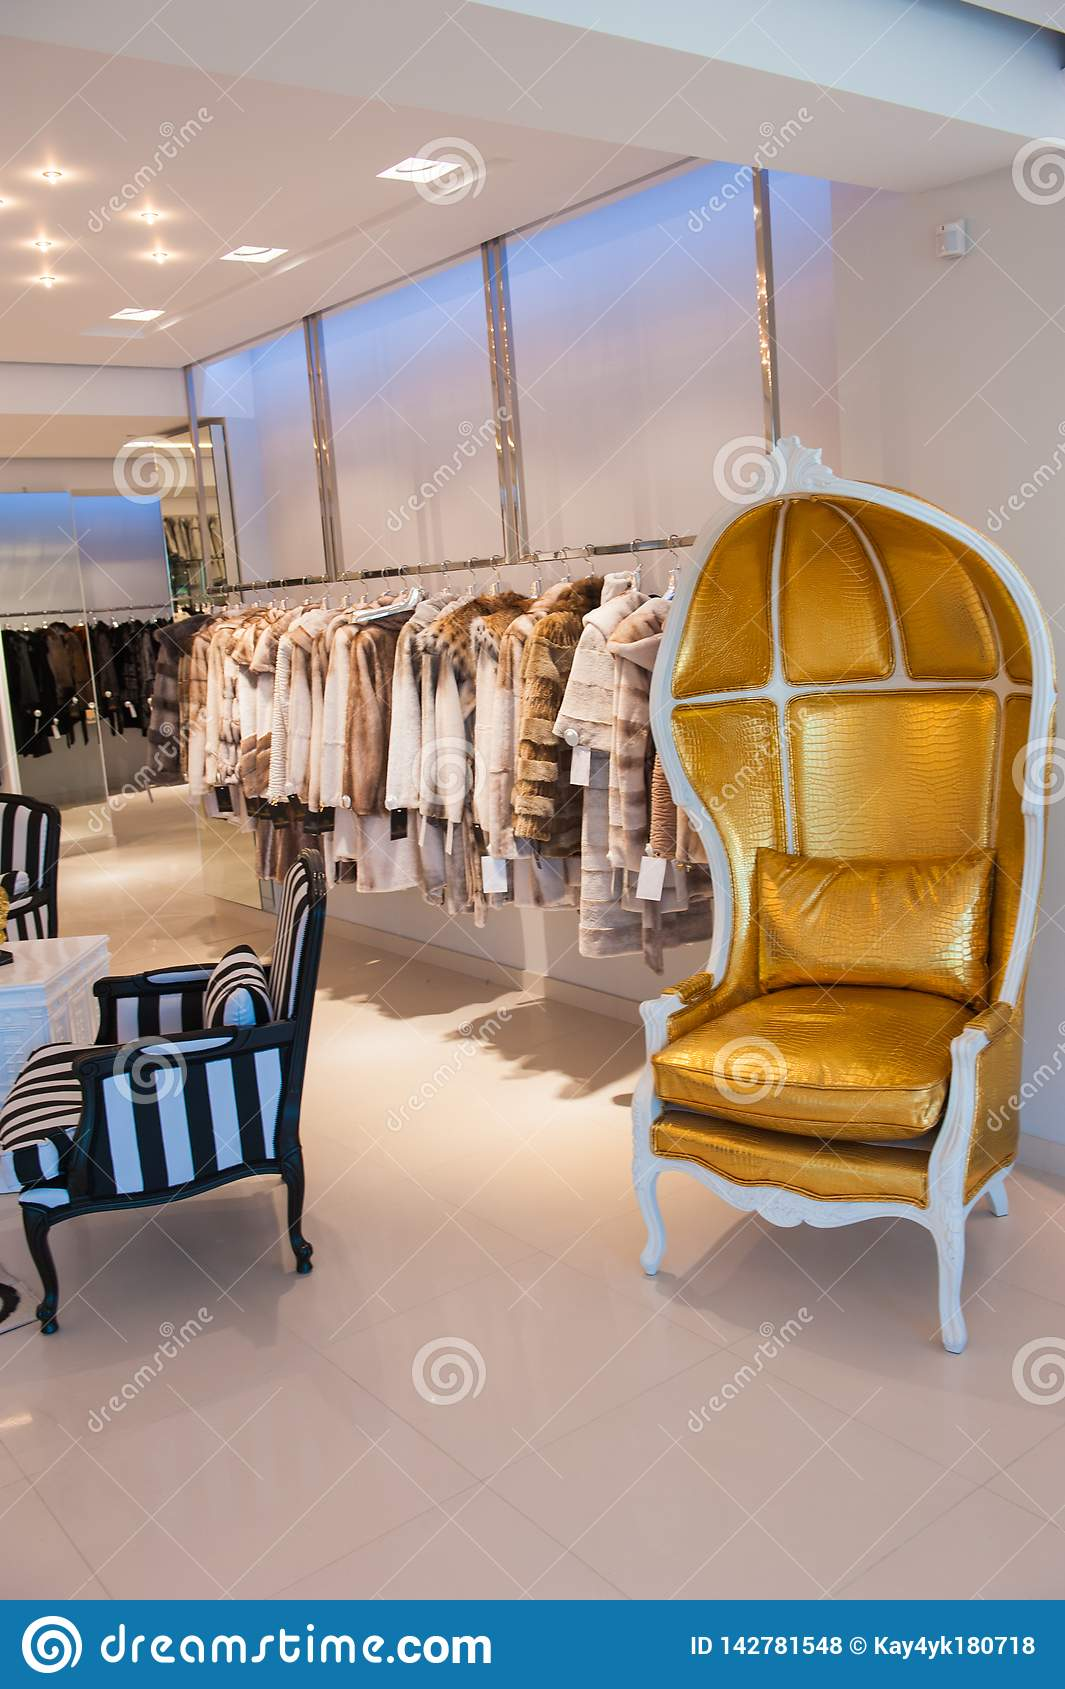 Luxury clothes and furs in a retail fashion store